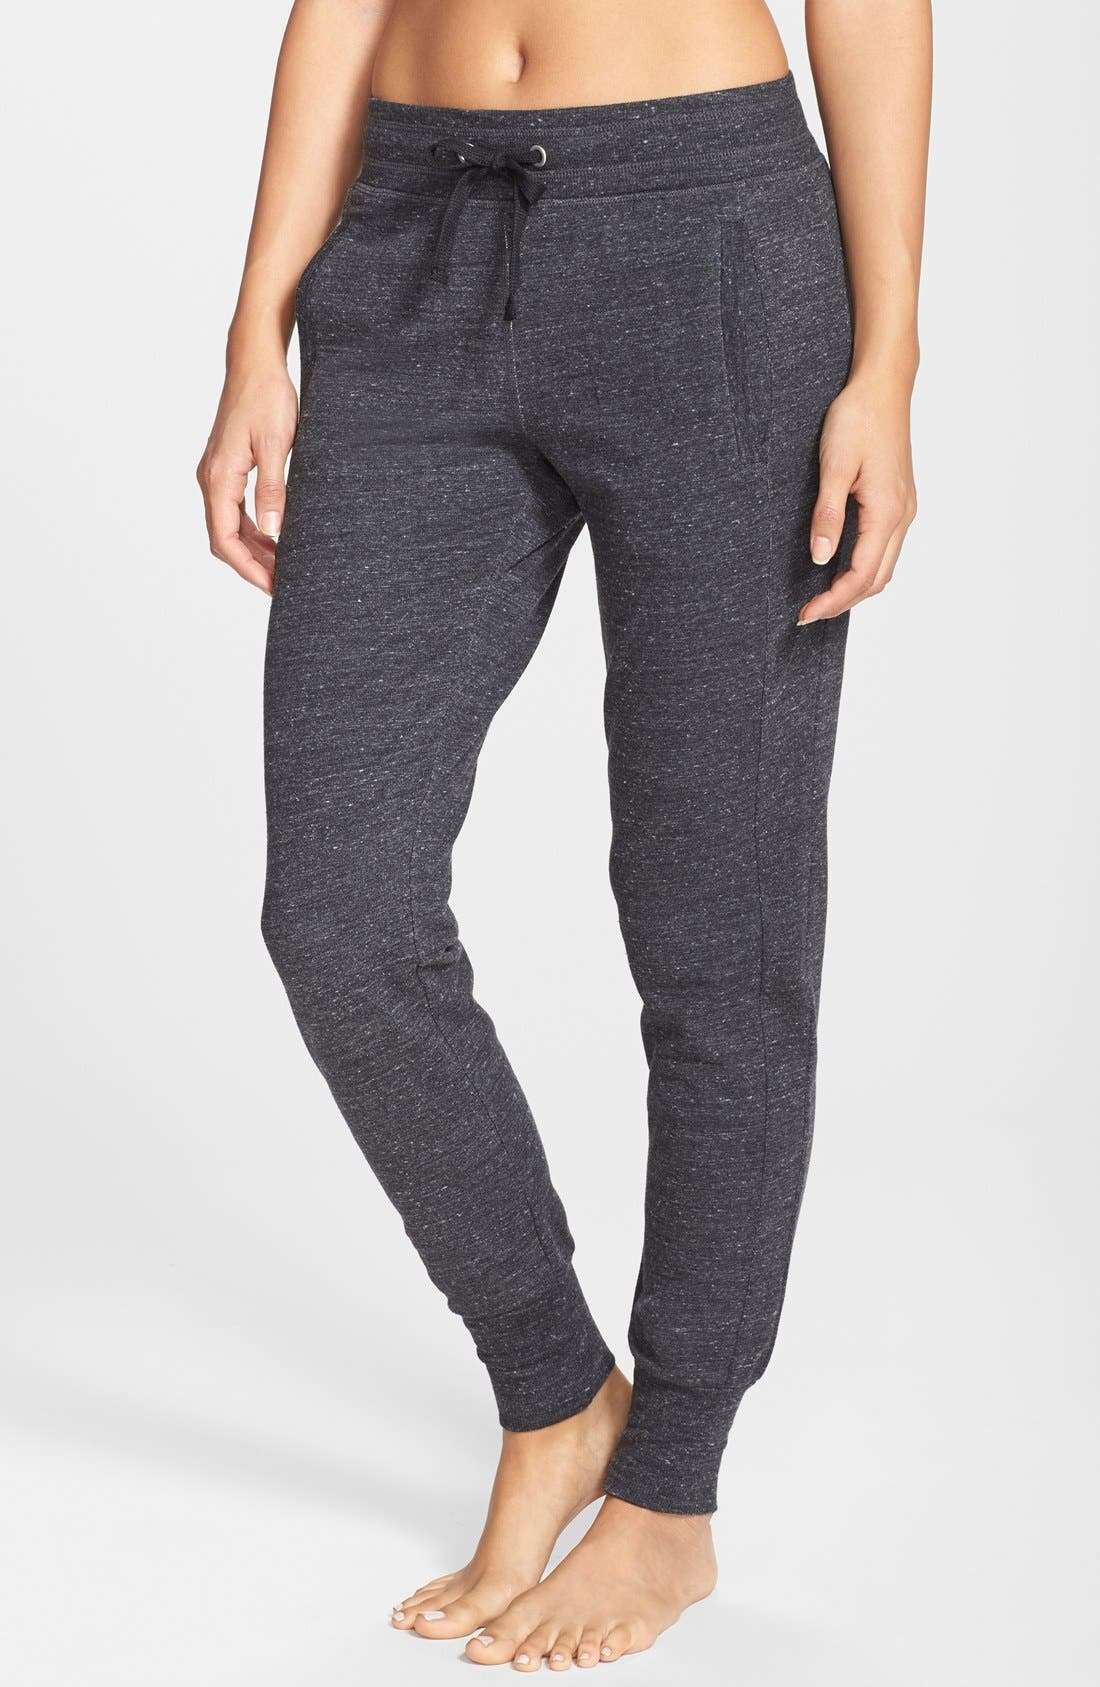 Alternate Image 1 Selected - Alo 'Verge' Sweatpants